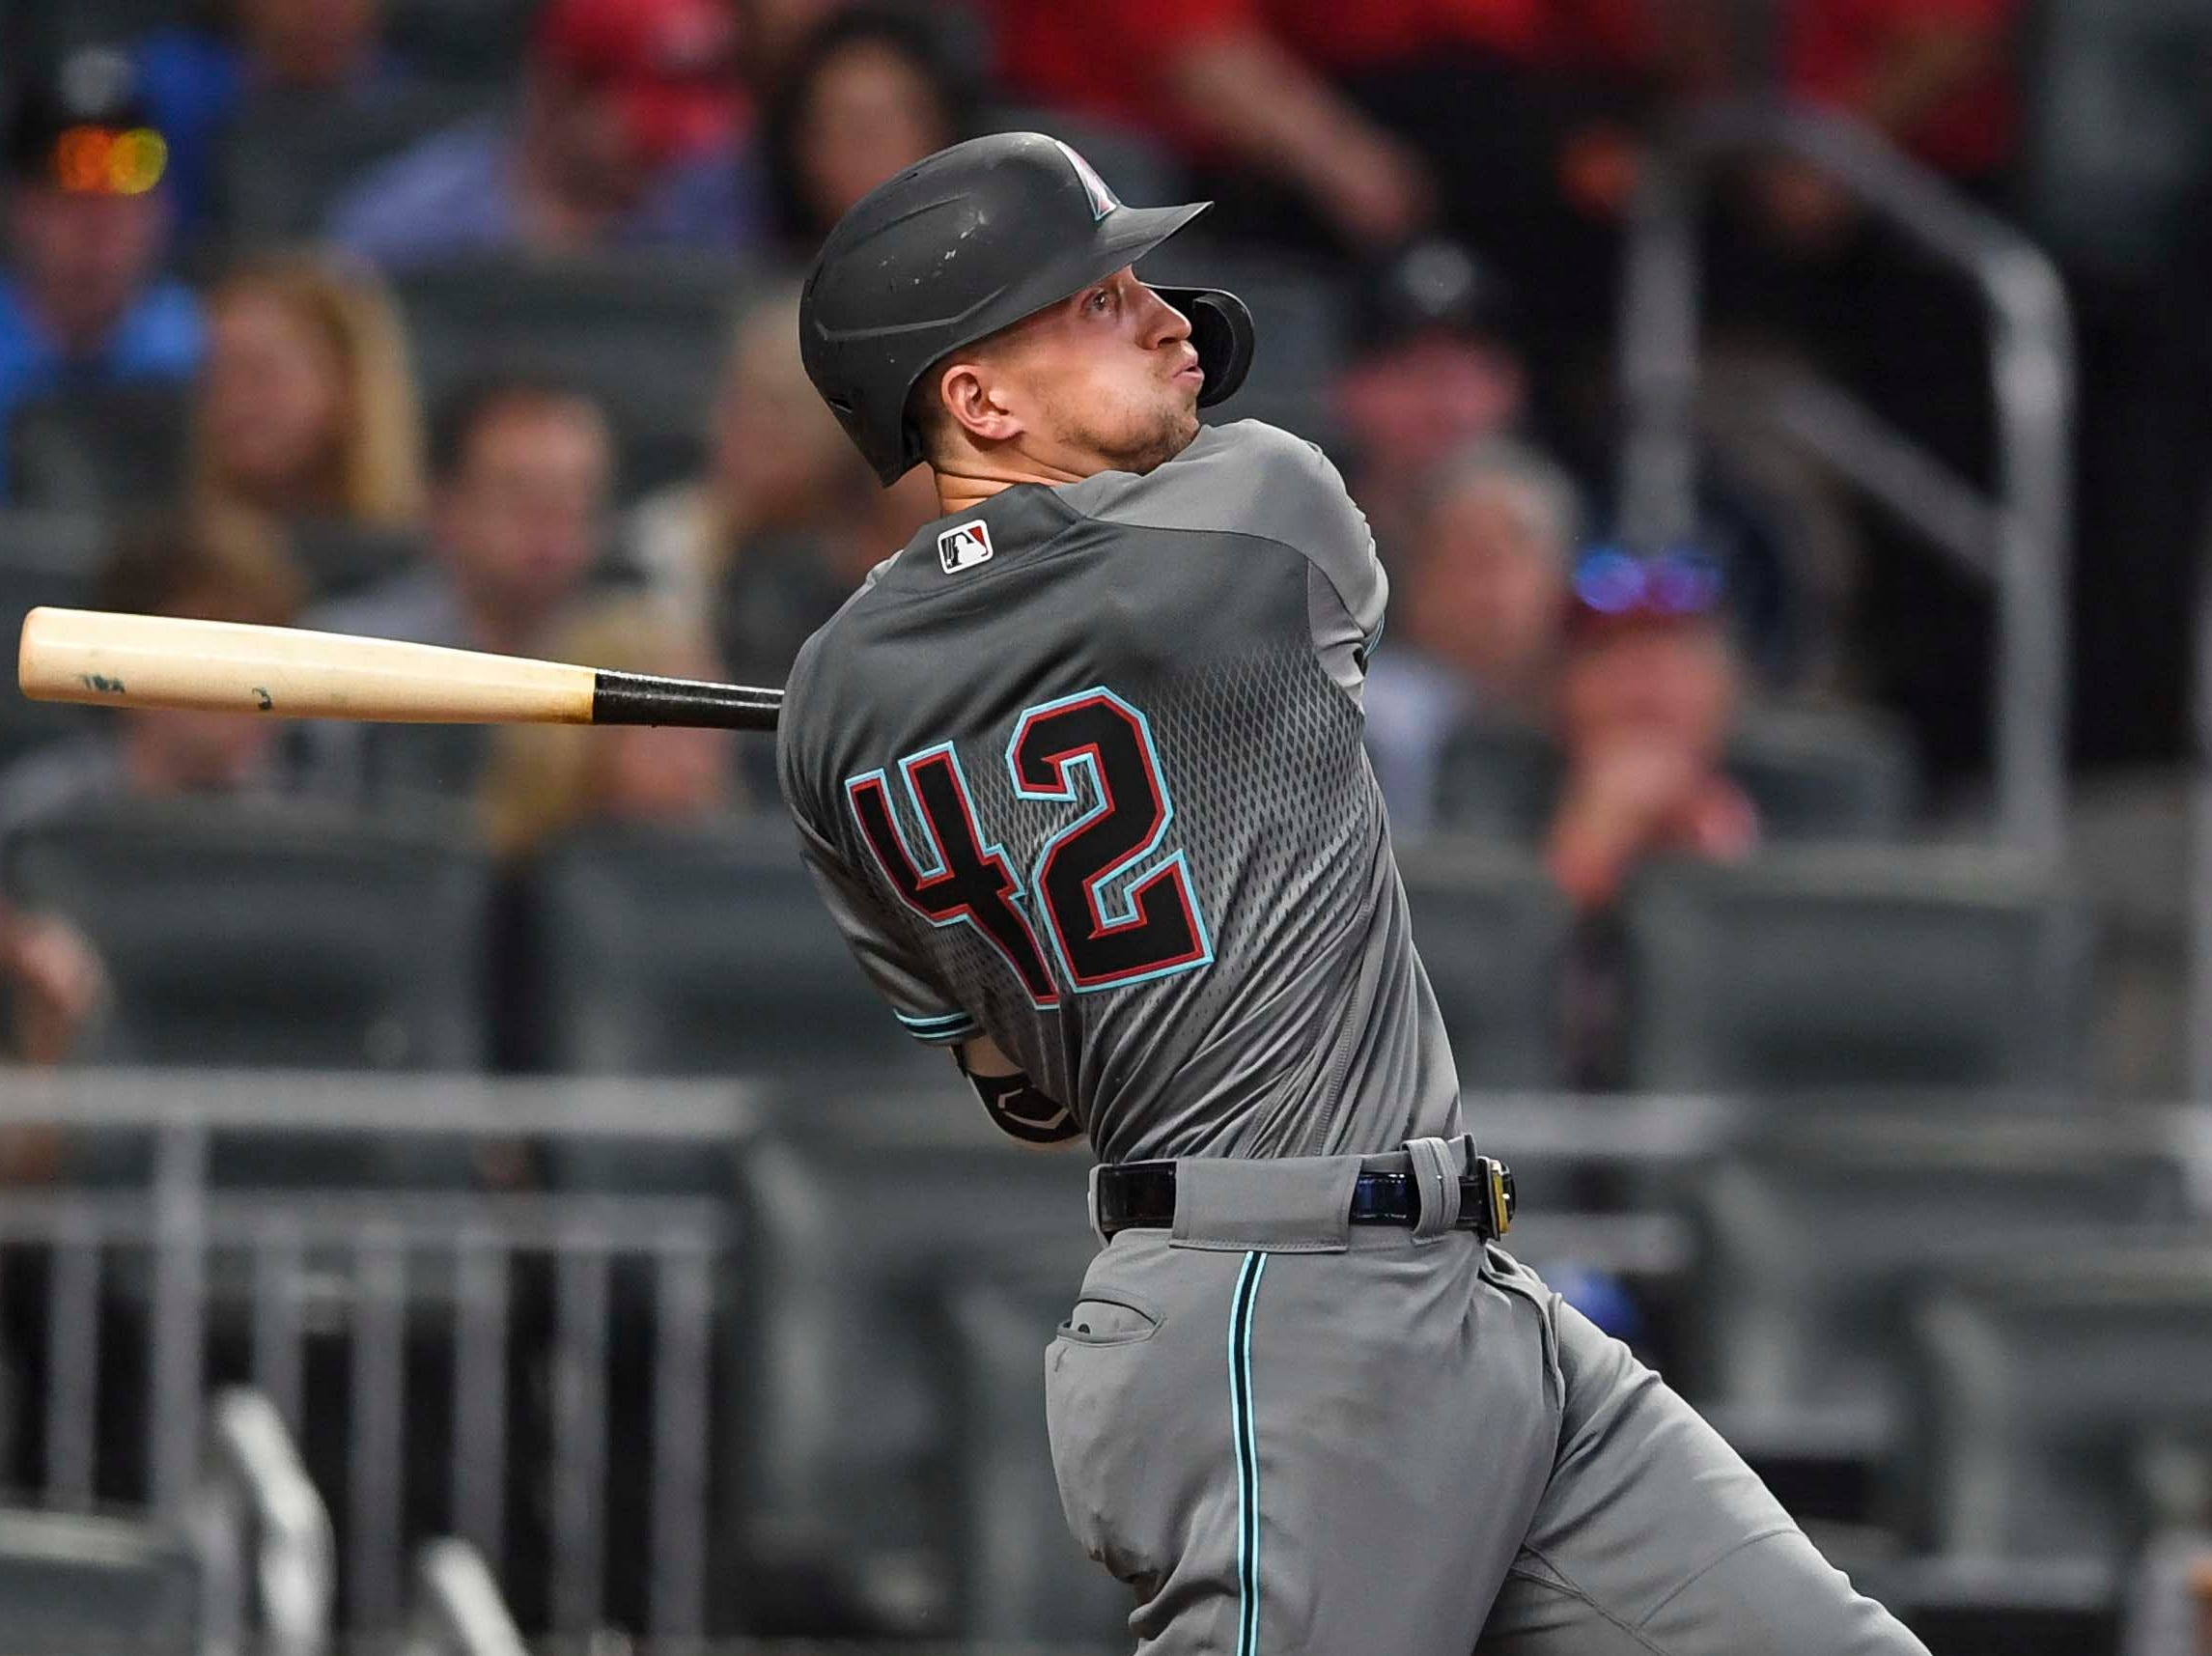 Apr 16, 2019; Atlanta, GA, USA; Arizona Diamondbacks shortstop Nick Ahmed (13) singles to drive in a run against the Atlanta Braves during the fourth inning at SunTrust Park. Mandatory Credit: Dale Zanine-USA TODAY Sports